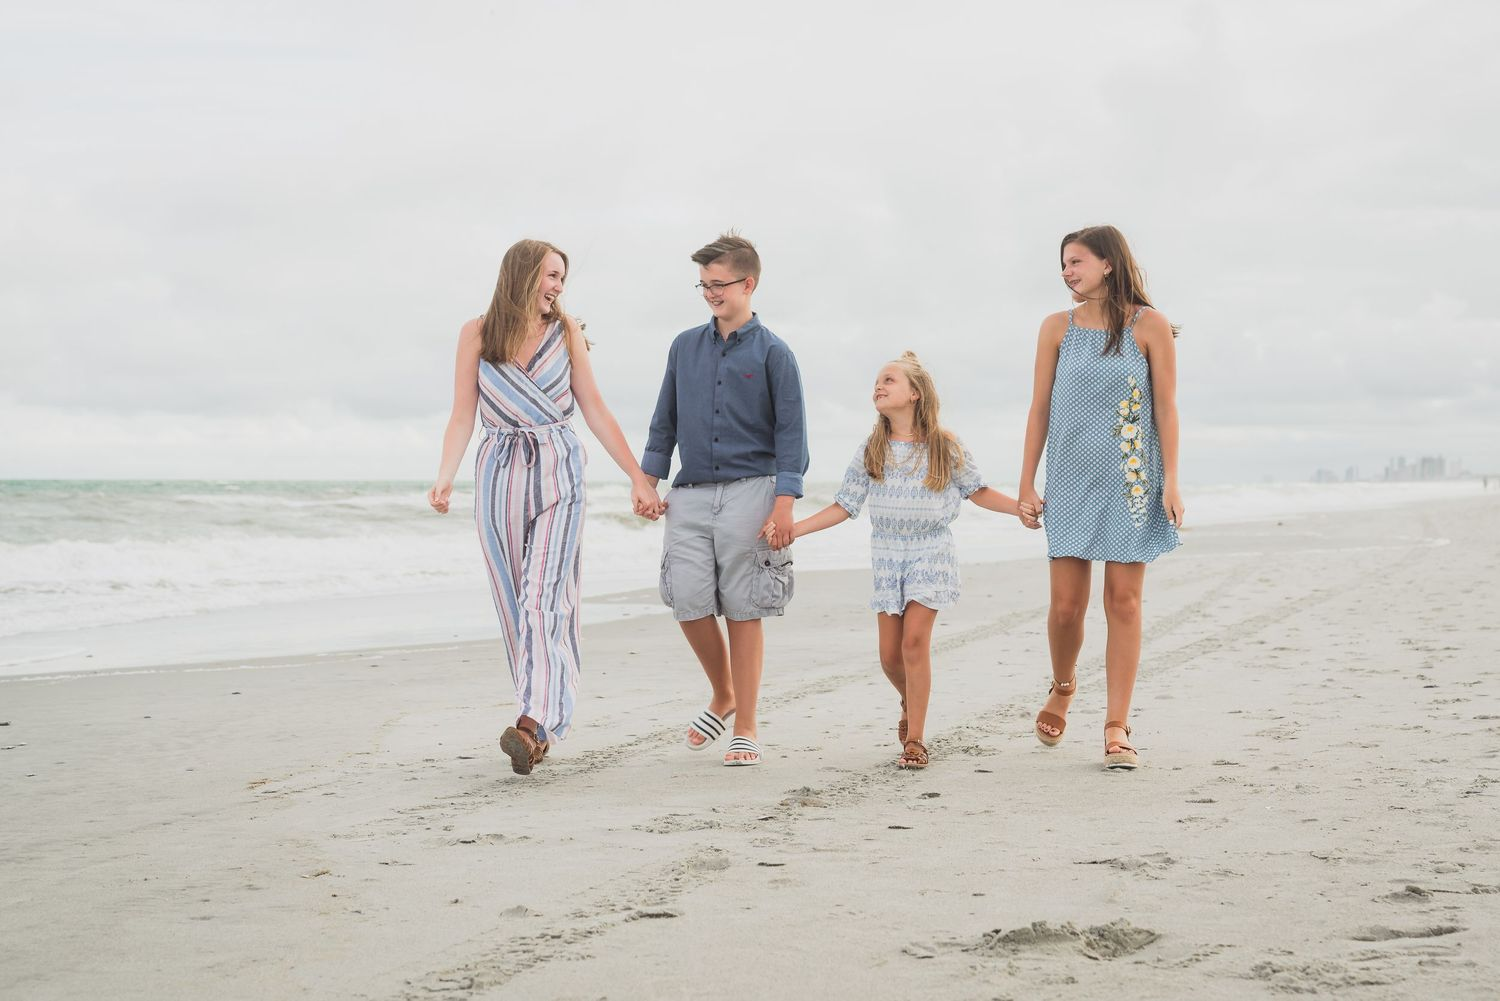 Family portrait at Myrtle Beach with PHV Photo, Myrtle Beach Family Portrait Photographer